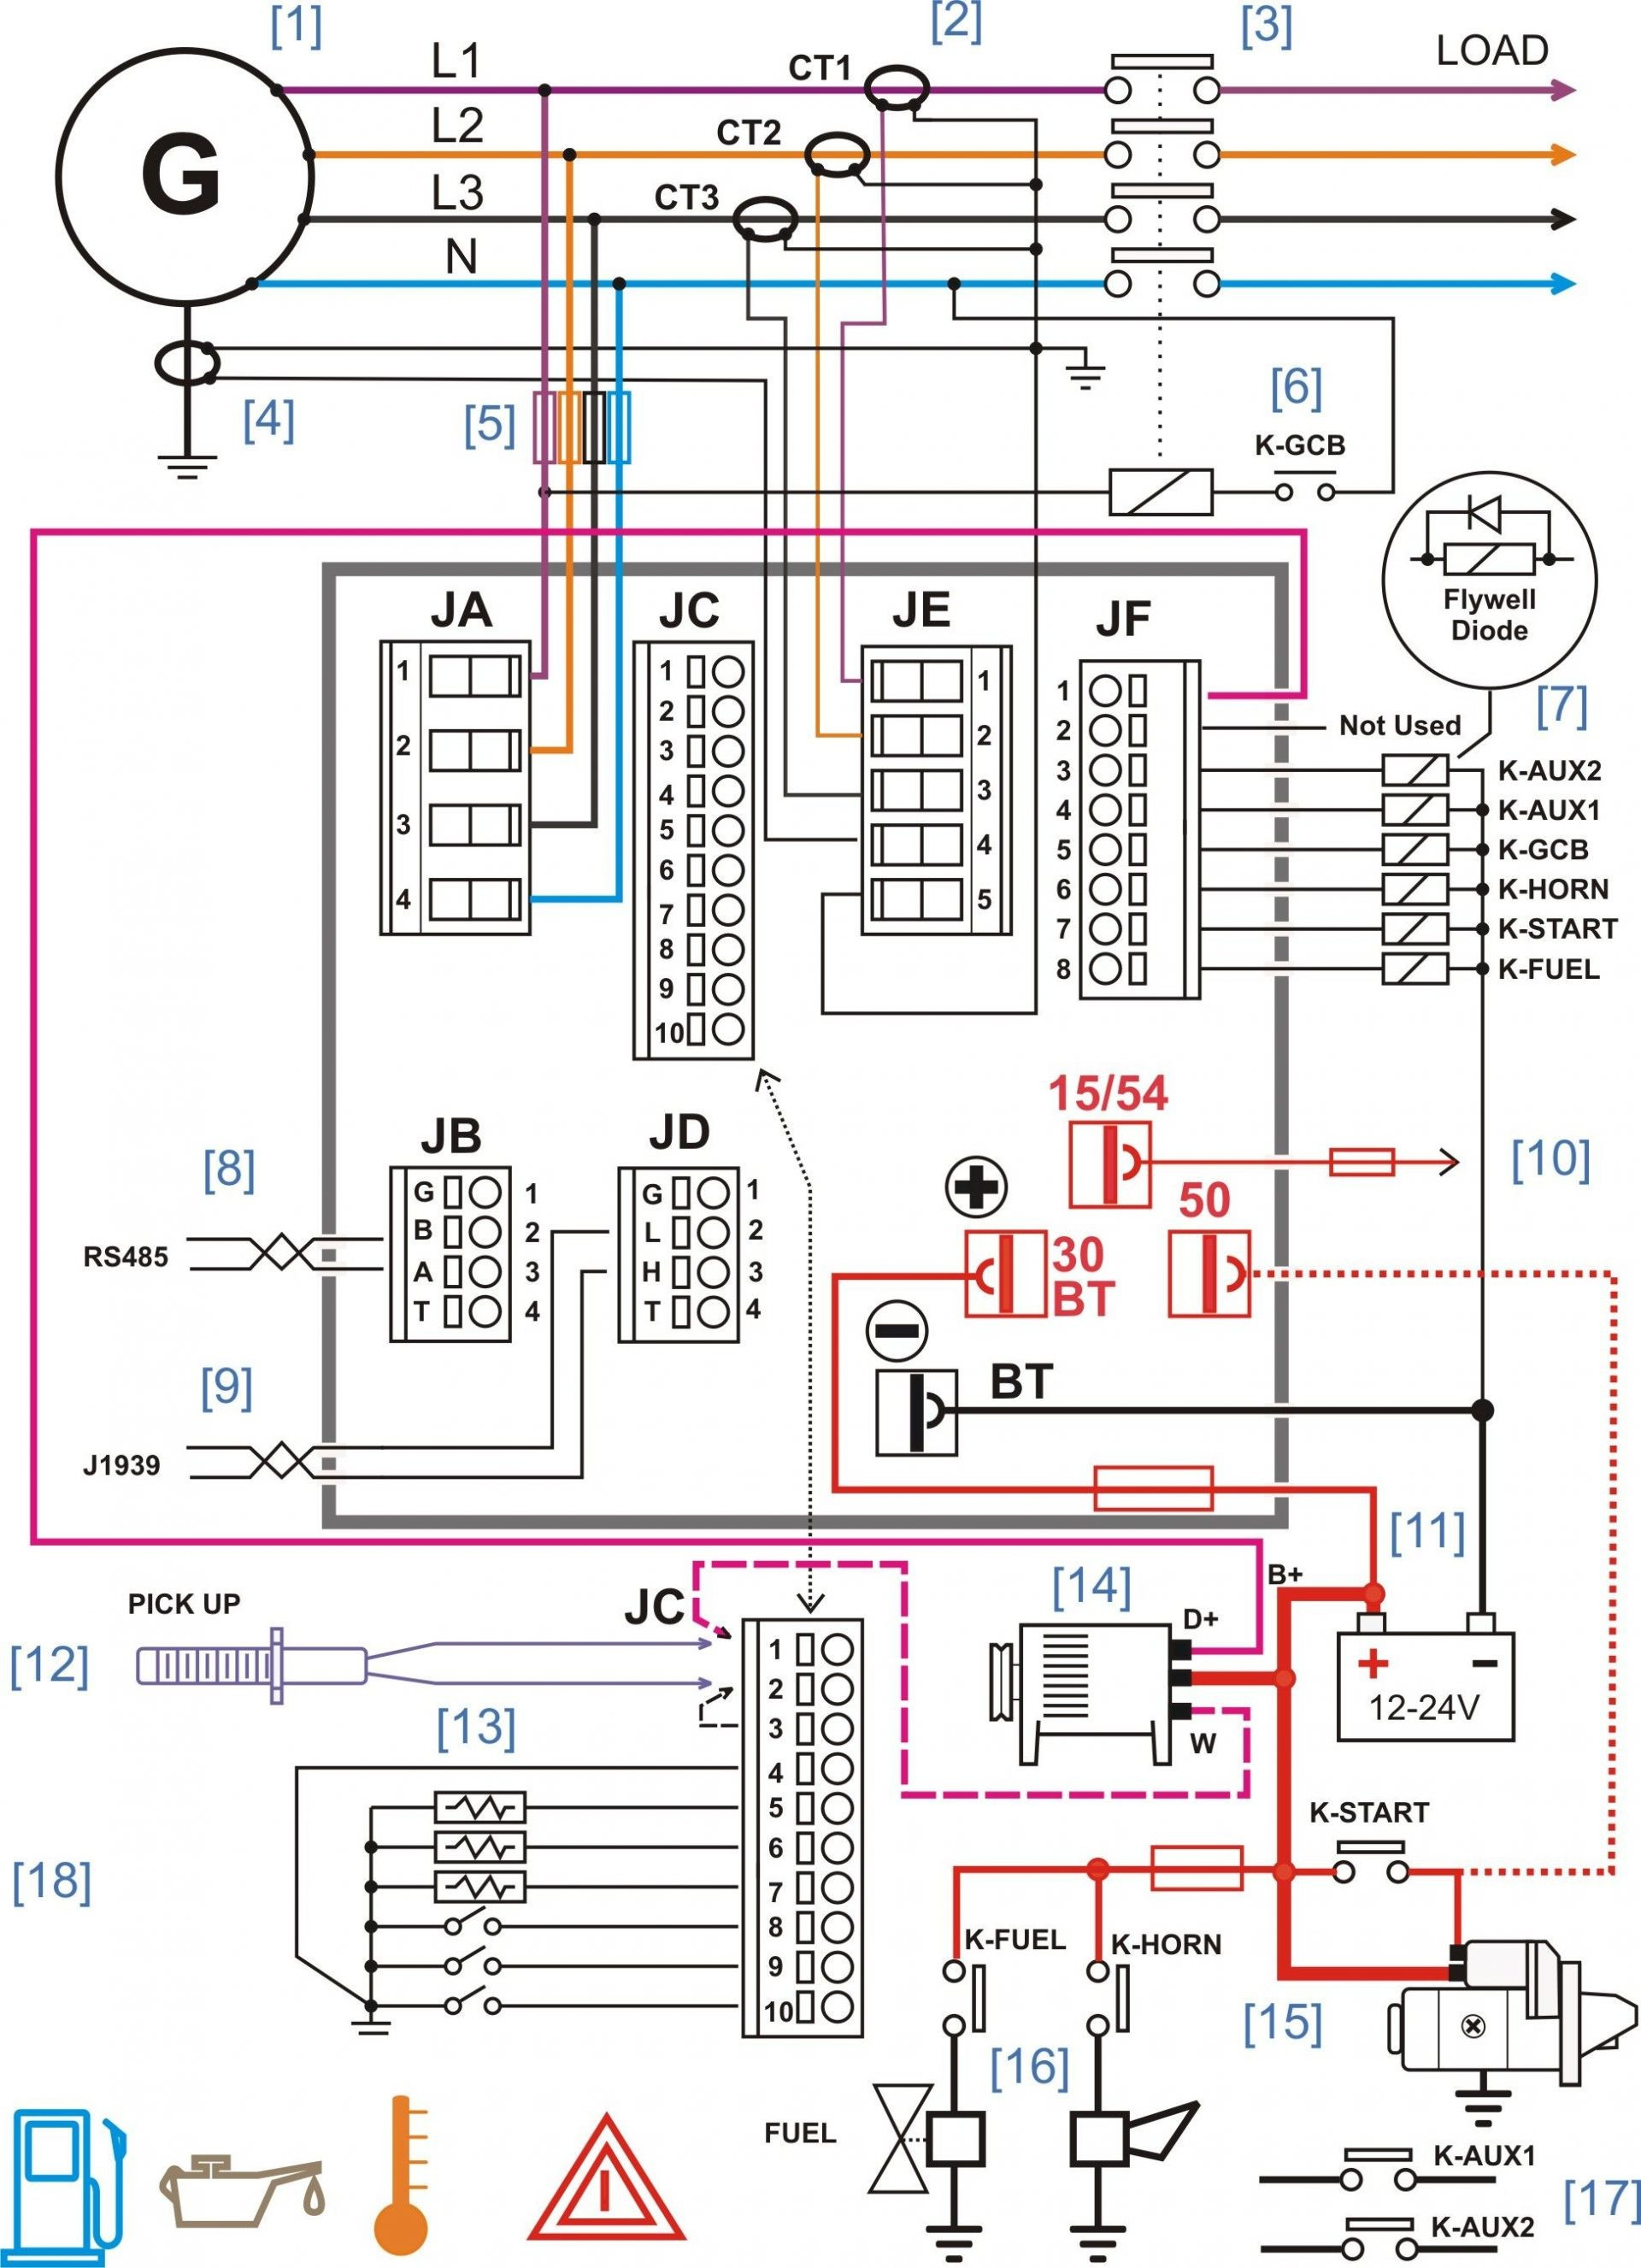 rv distribution panel wiring diagram Collection-Wiring Diagram A Distribution Board Valid Wiring Diagram for Distribution Board New Electrical Panel Board 18-p